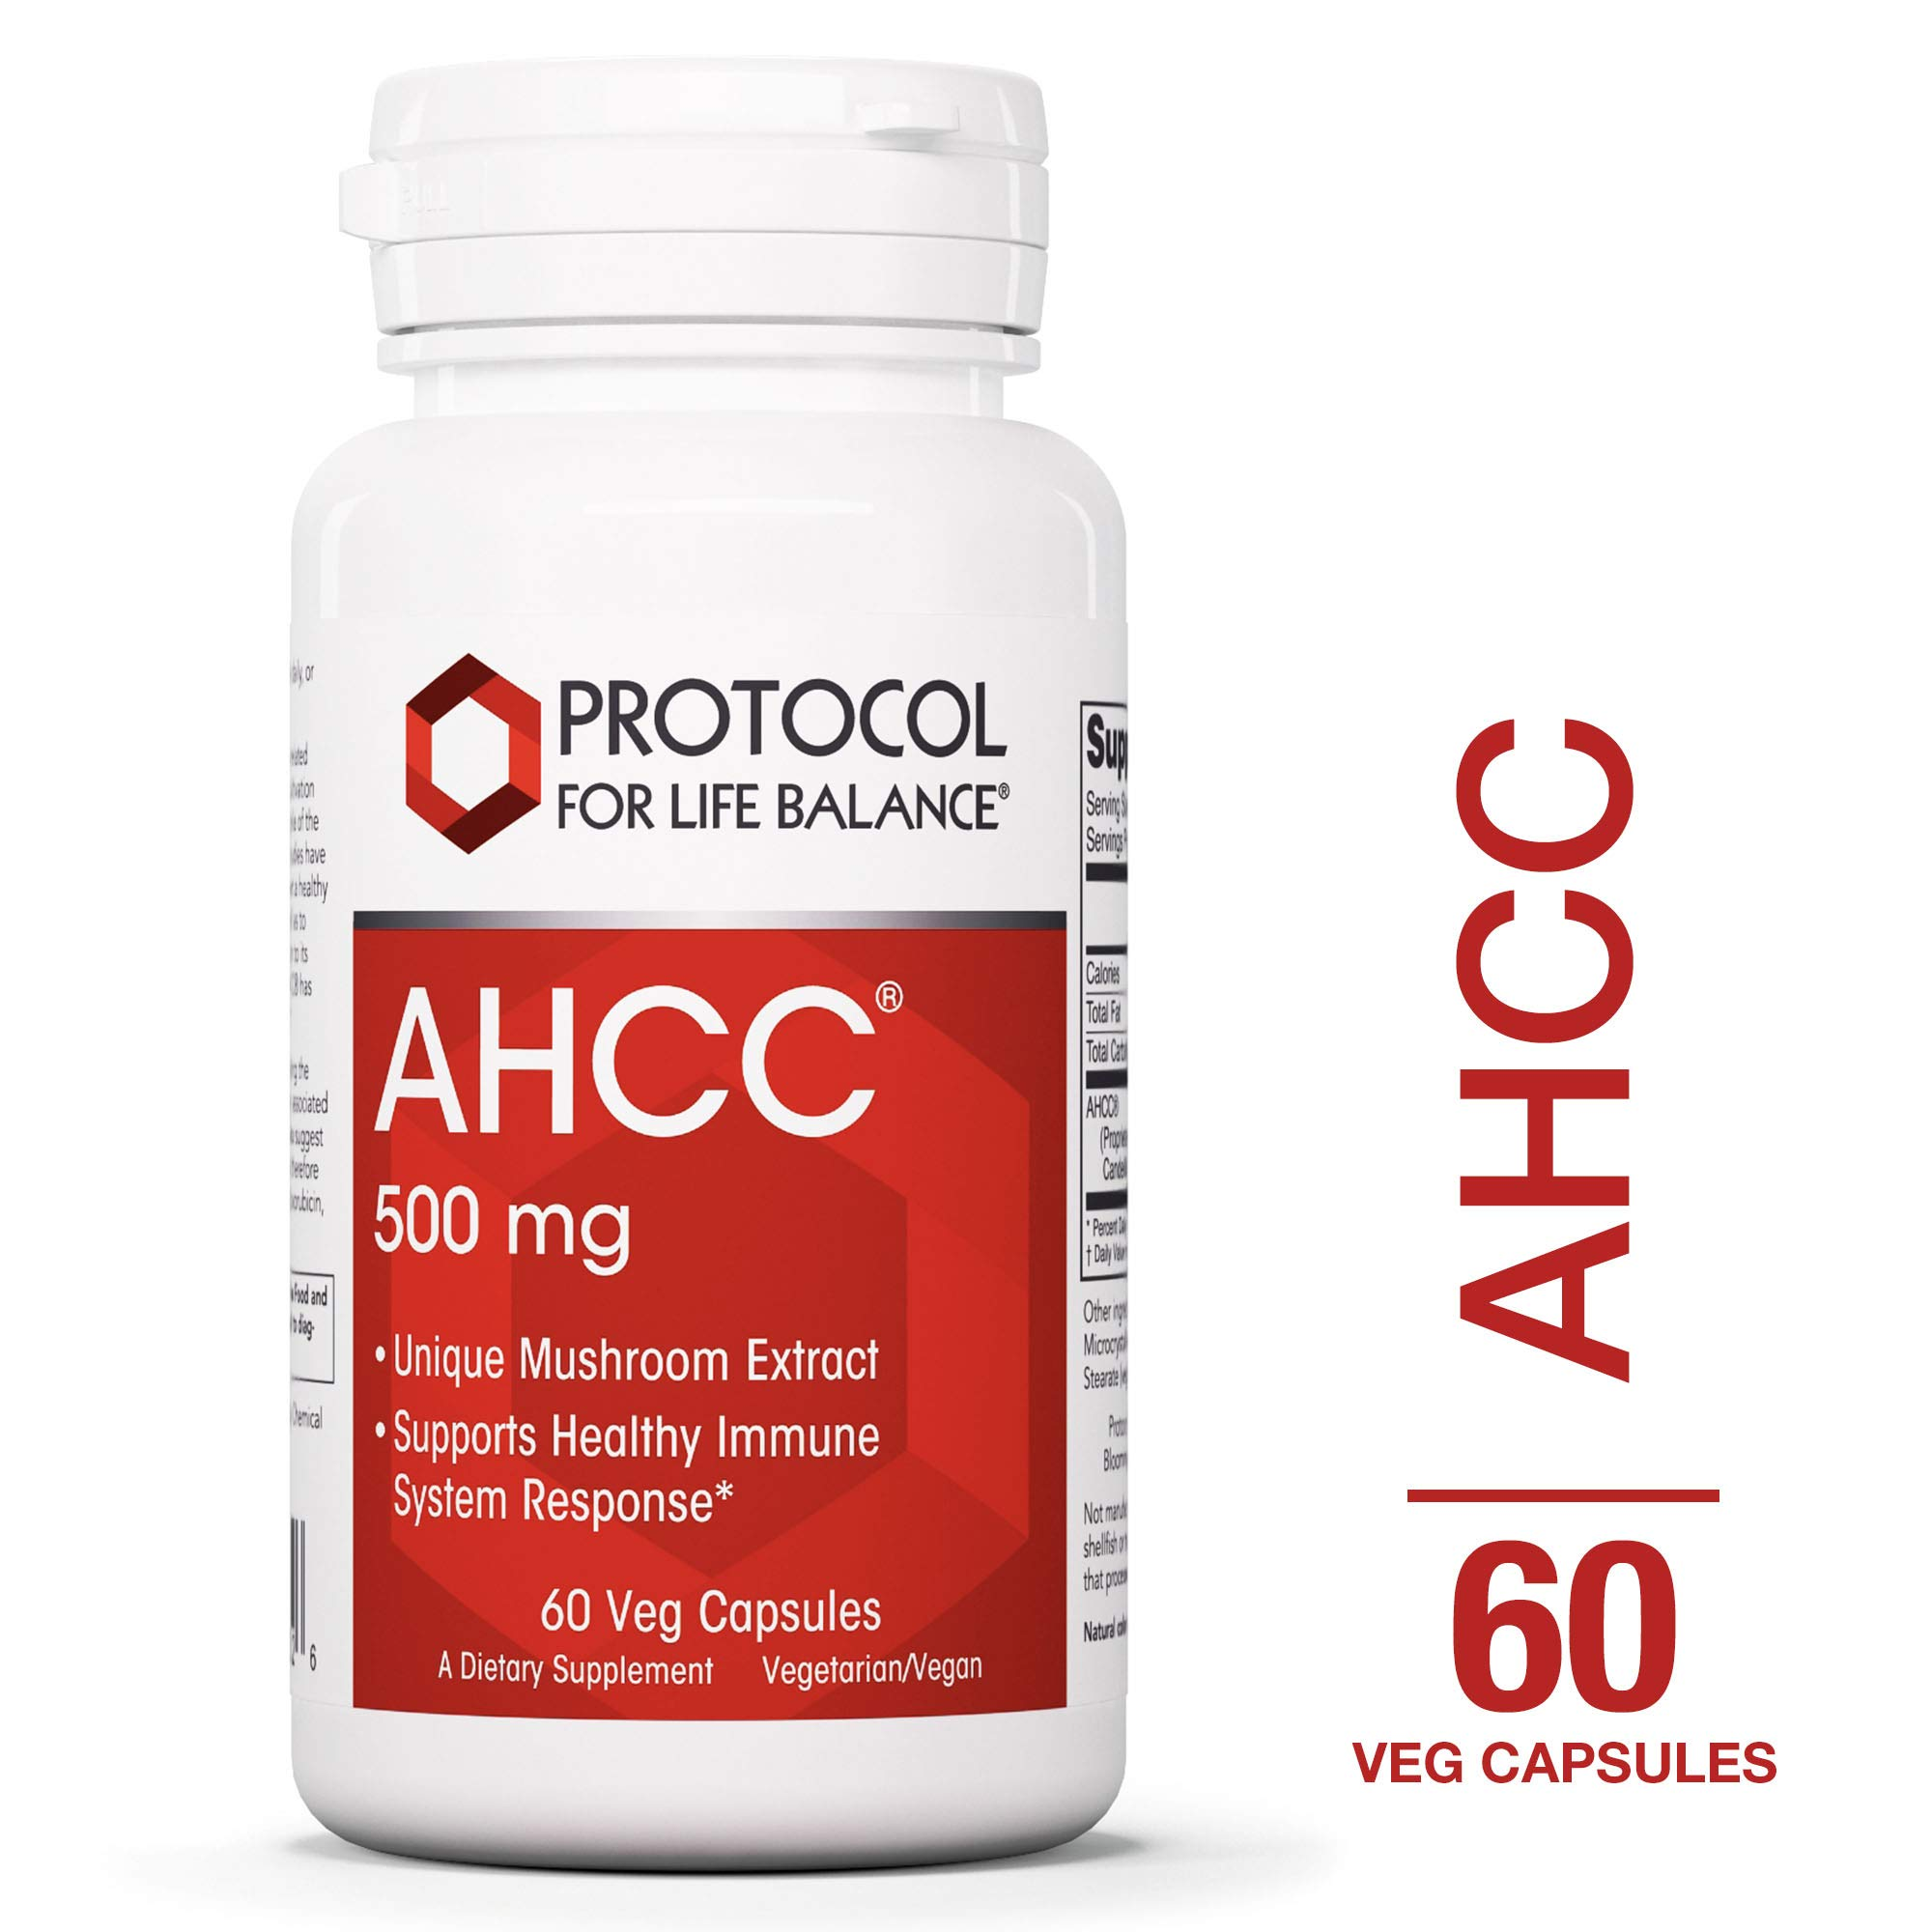 Protocol For Life Balance - AHCC 500 mg - Mushroom Extract to Support Healthy Immune System Response, Rich in Antioxidants, Helps Cardiovascular System Health, 60 Veg Capsules